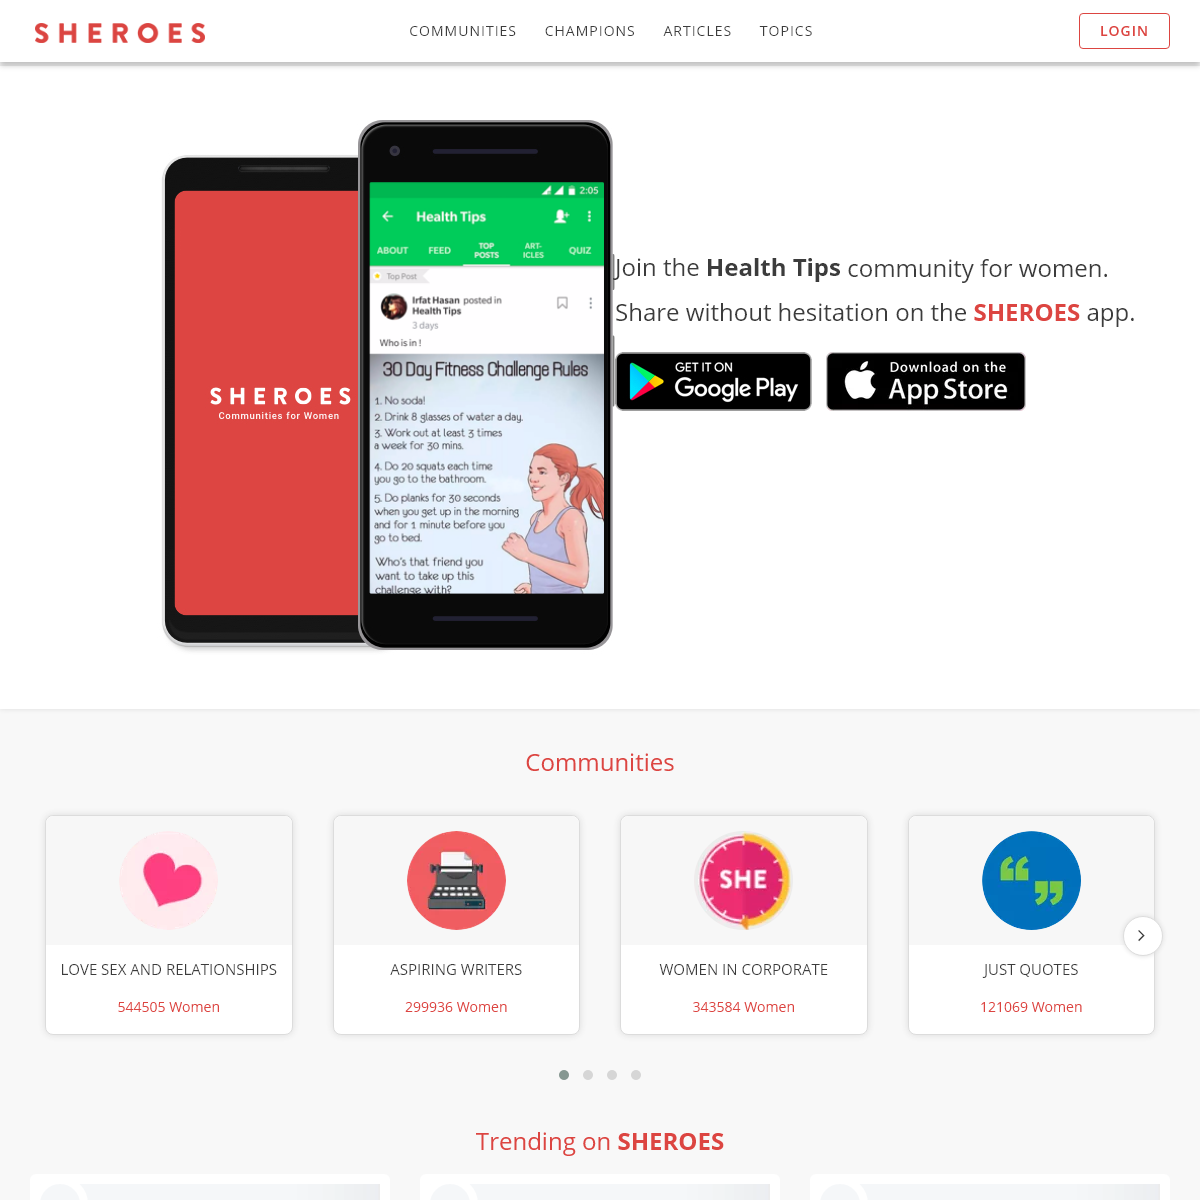 SHEROES - The Women Only Social Network